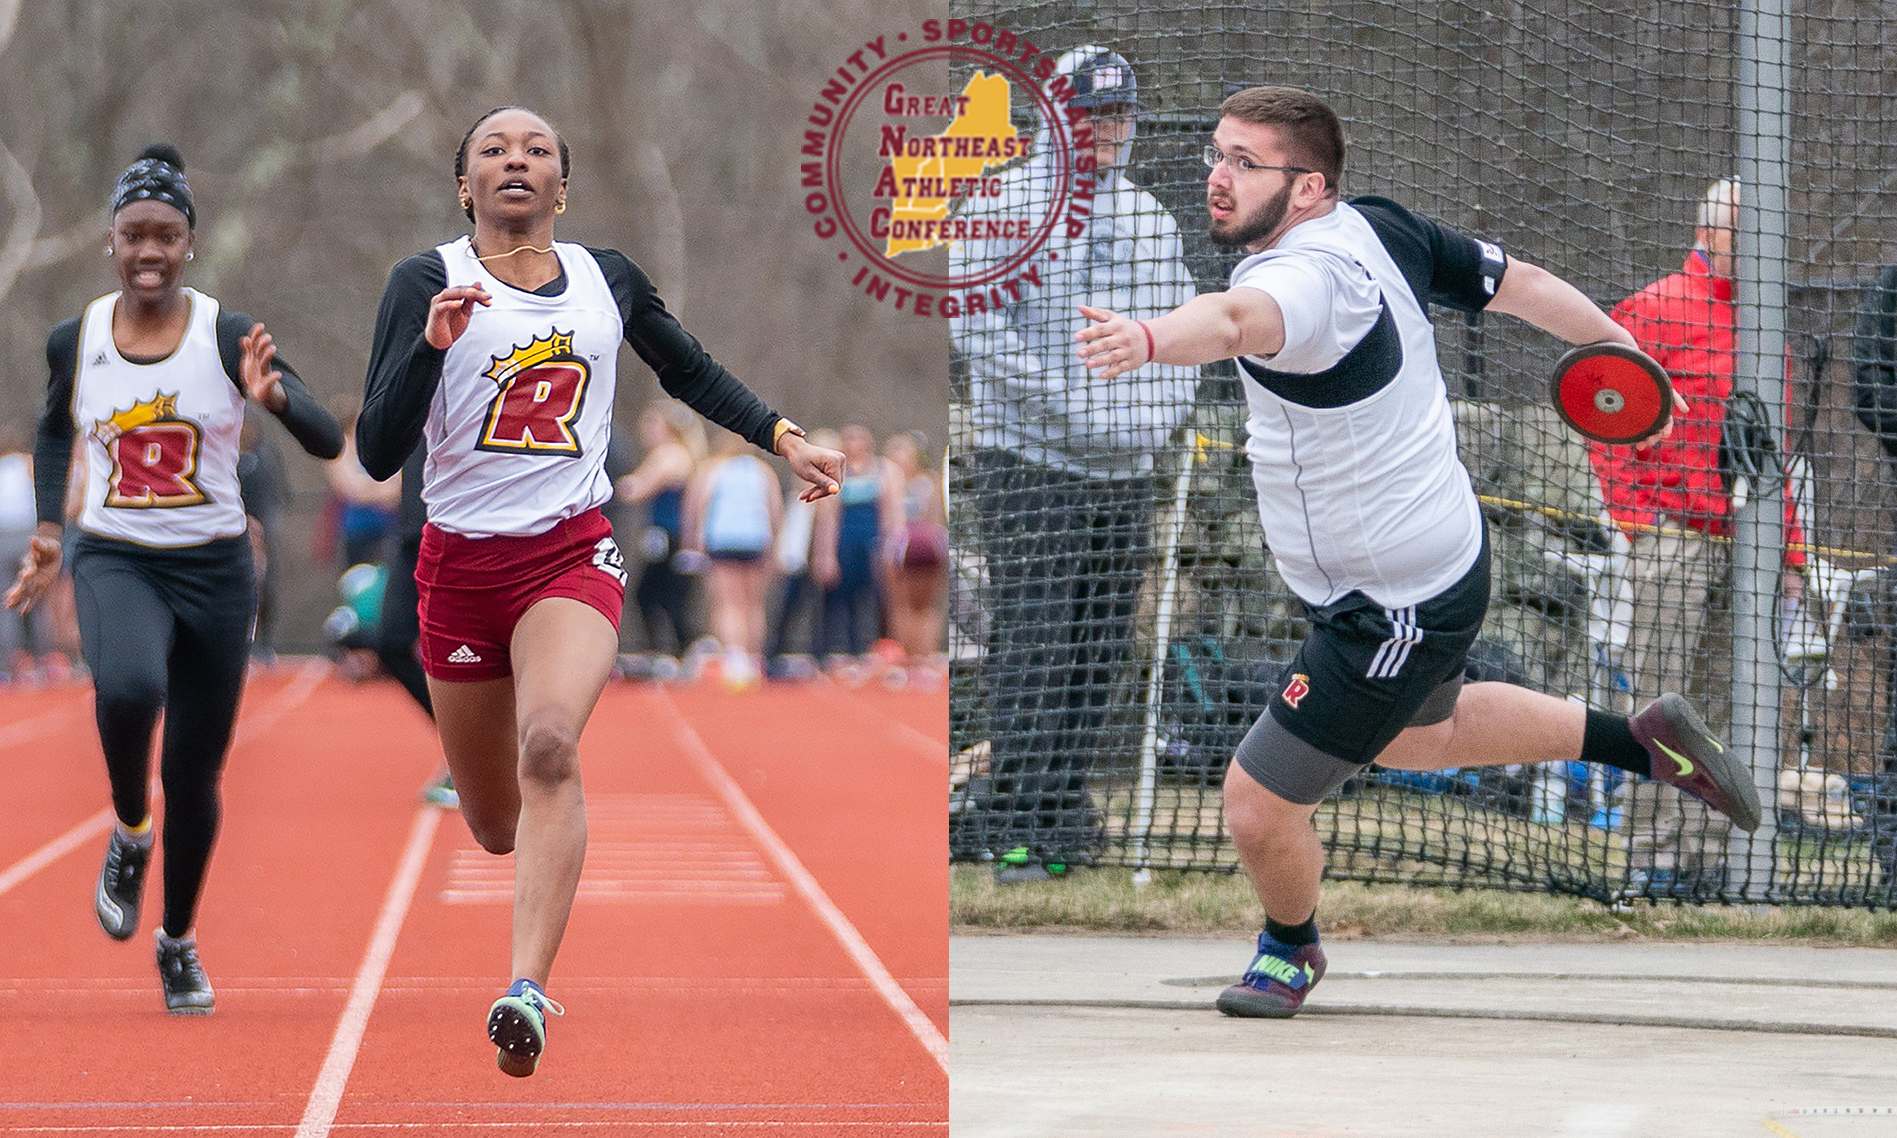 Anderson, St. Hilaire Earn GNAC Weekly Honors